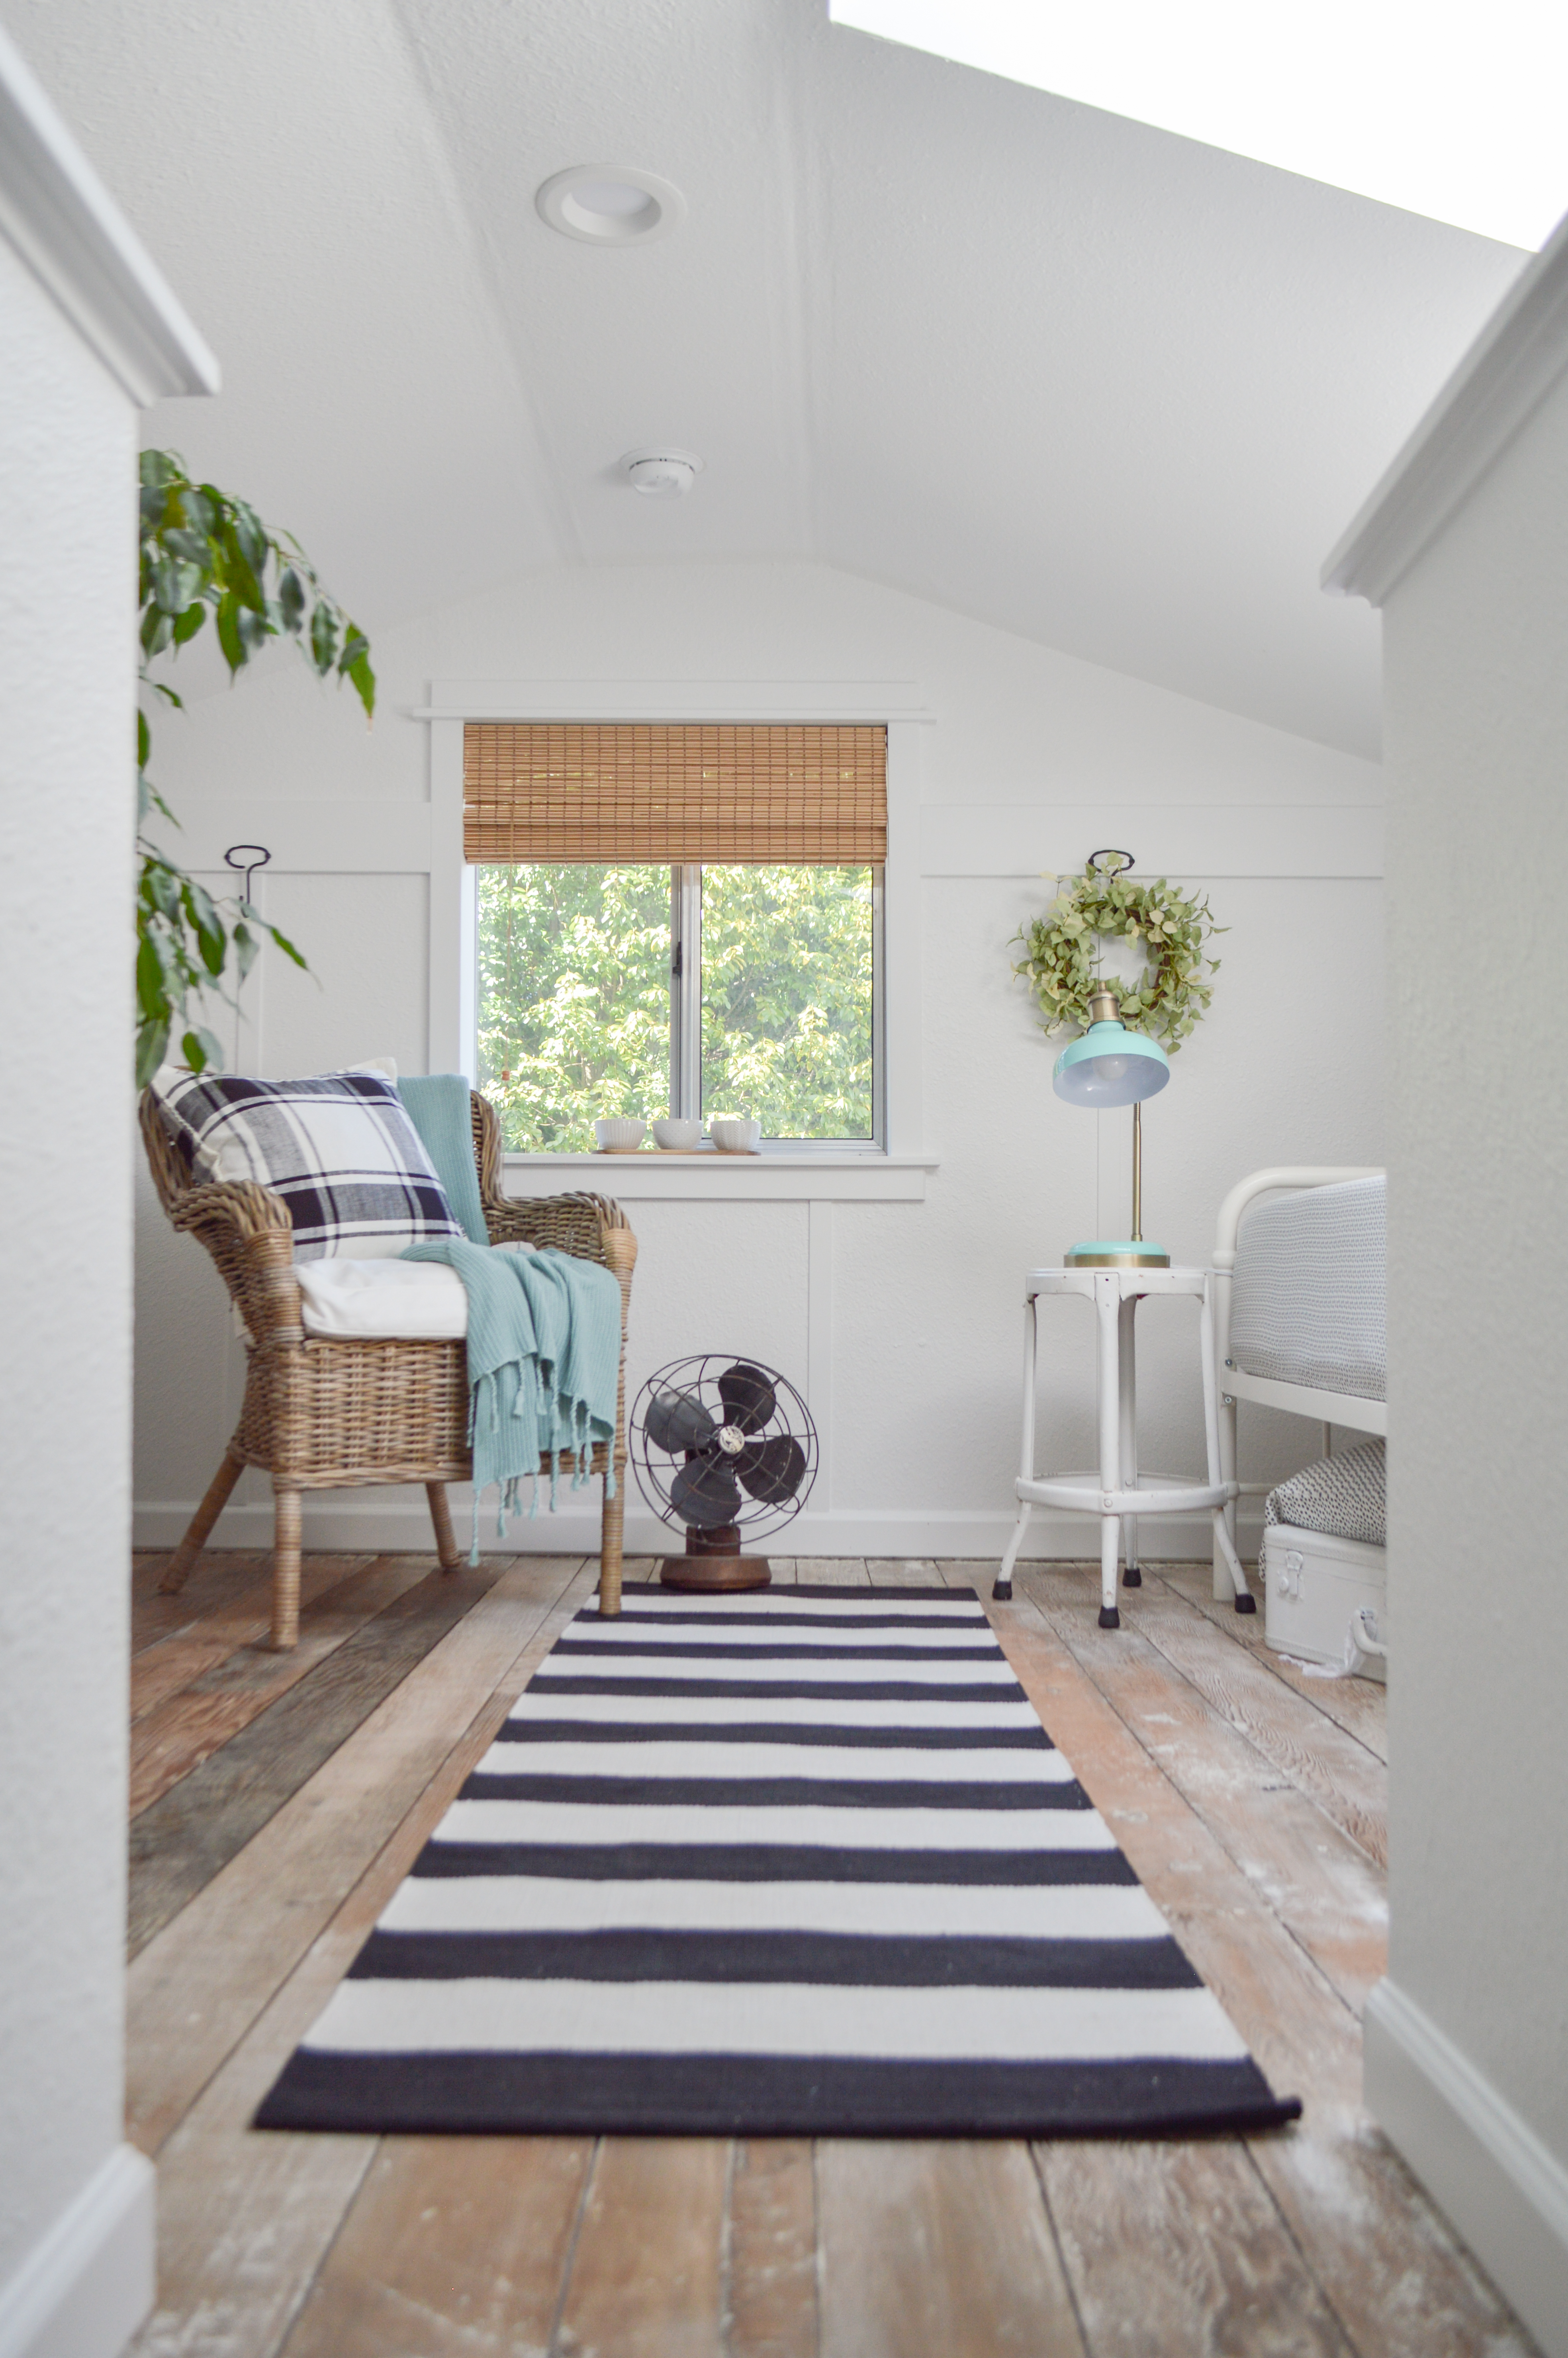 Loft Guest Bedroom Makeover Reveal - Fox Hollow Cottage on dining room decorating ideas, bathroom decorating ideas, daybed diy ideas, daybed home office ideas, daybed guest room decorating ideas, daybed bedroom furniture, living room decorating ideas, sitting room decorating ideas, daybed design ideas,